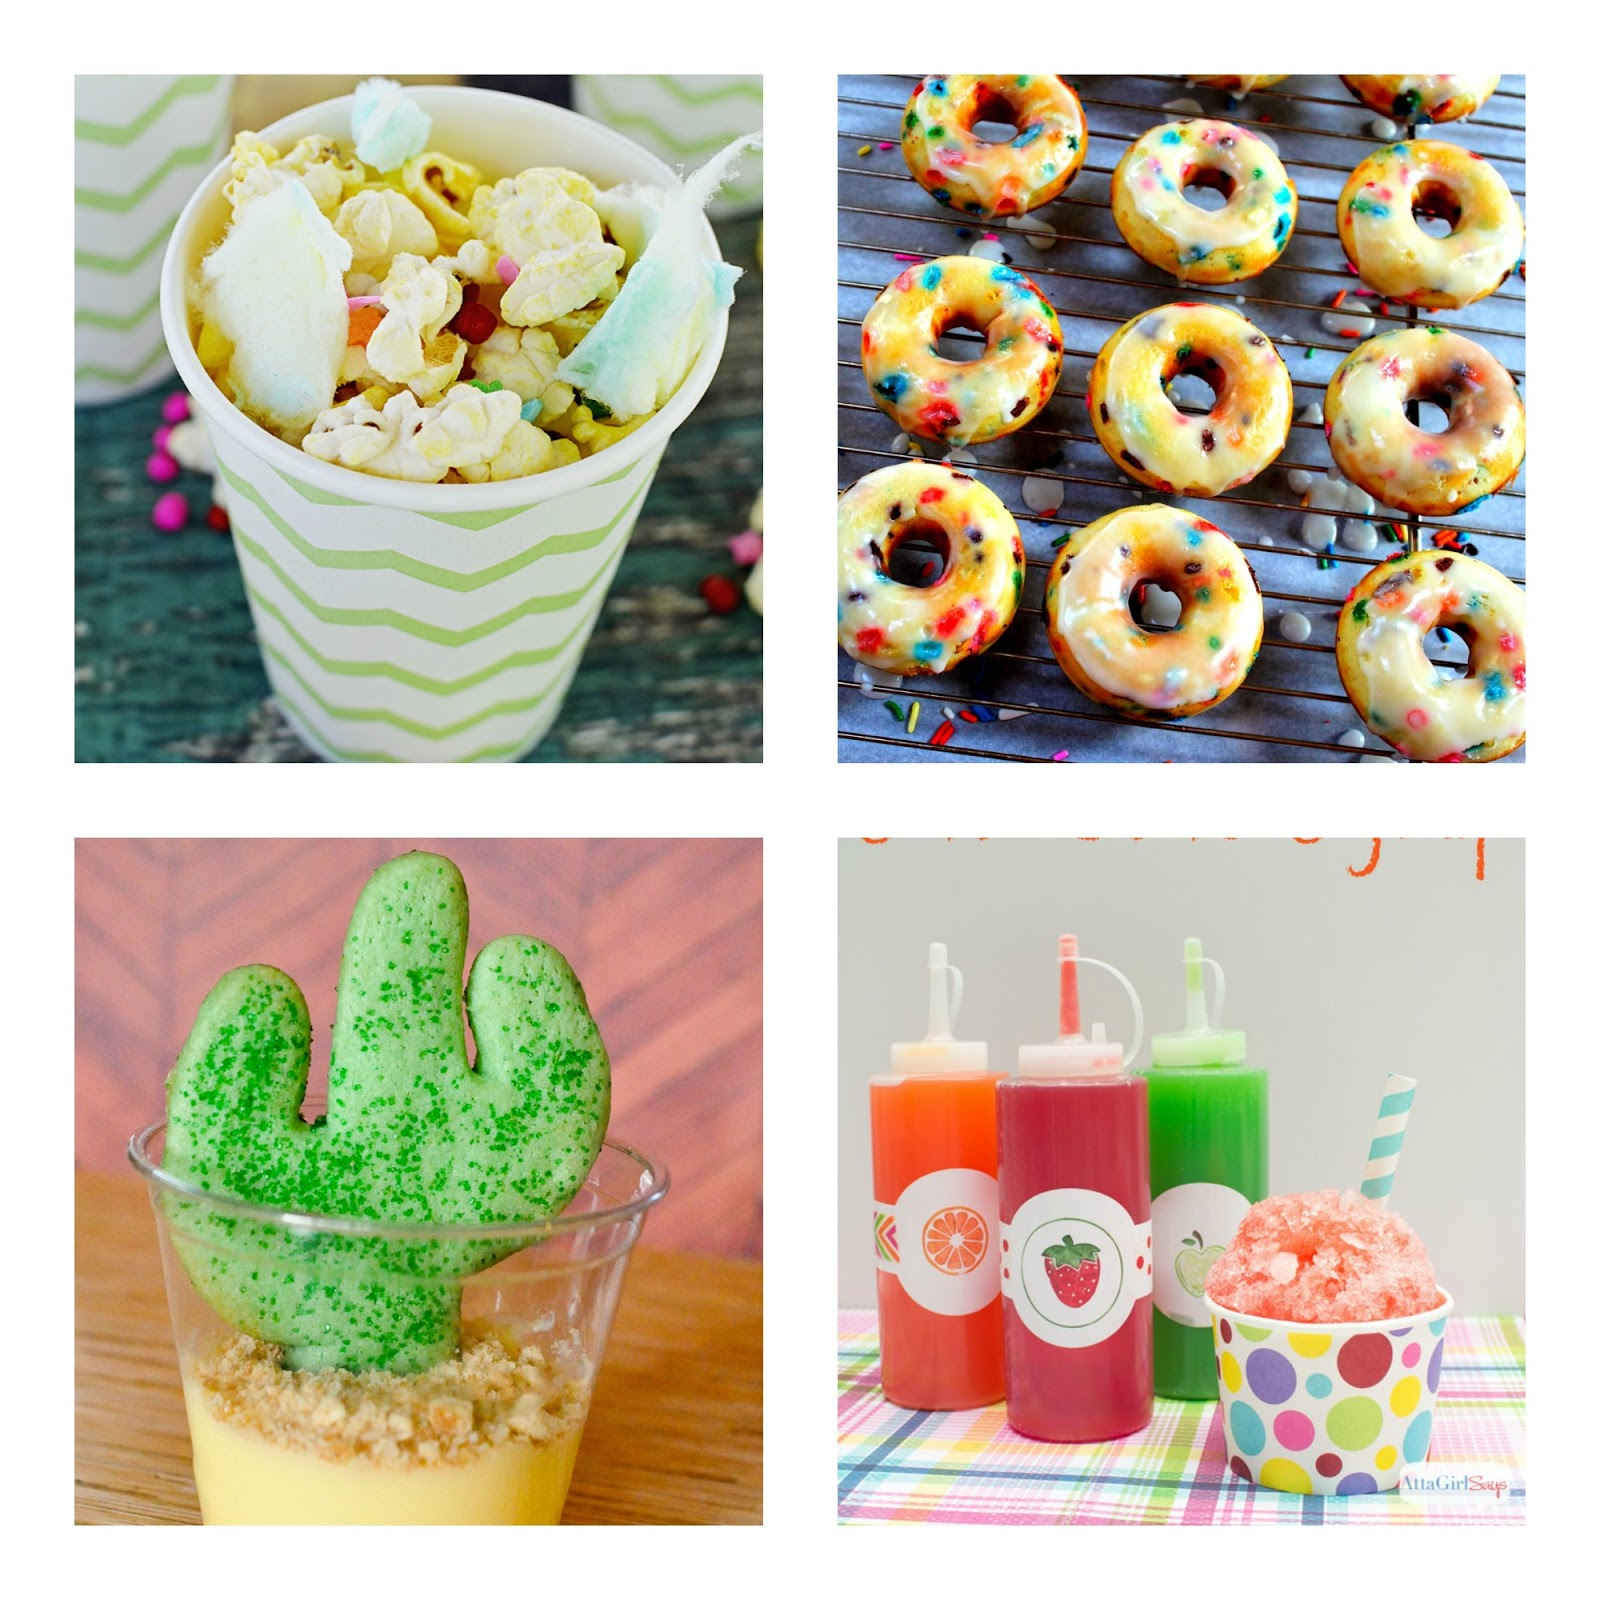 Cotton Candy Popcorn, Confetti Donuts, Cowboy Cactus,  Homemade Sno-Cone Syrup